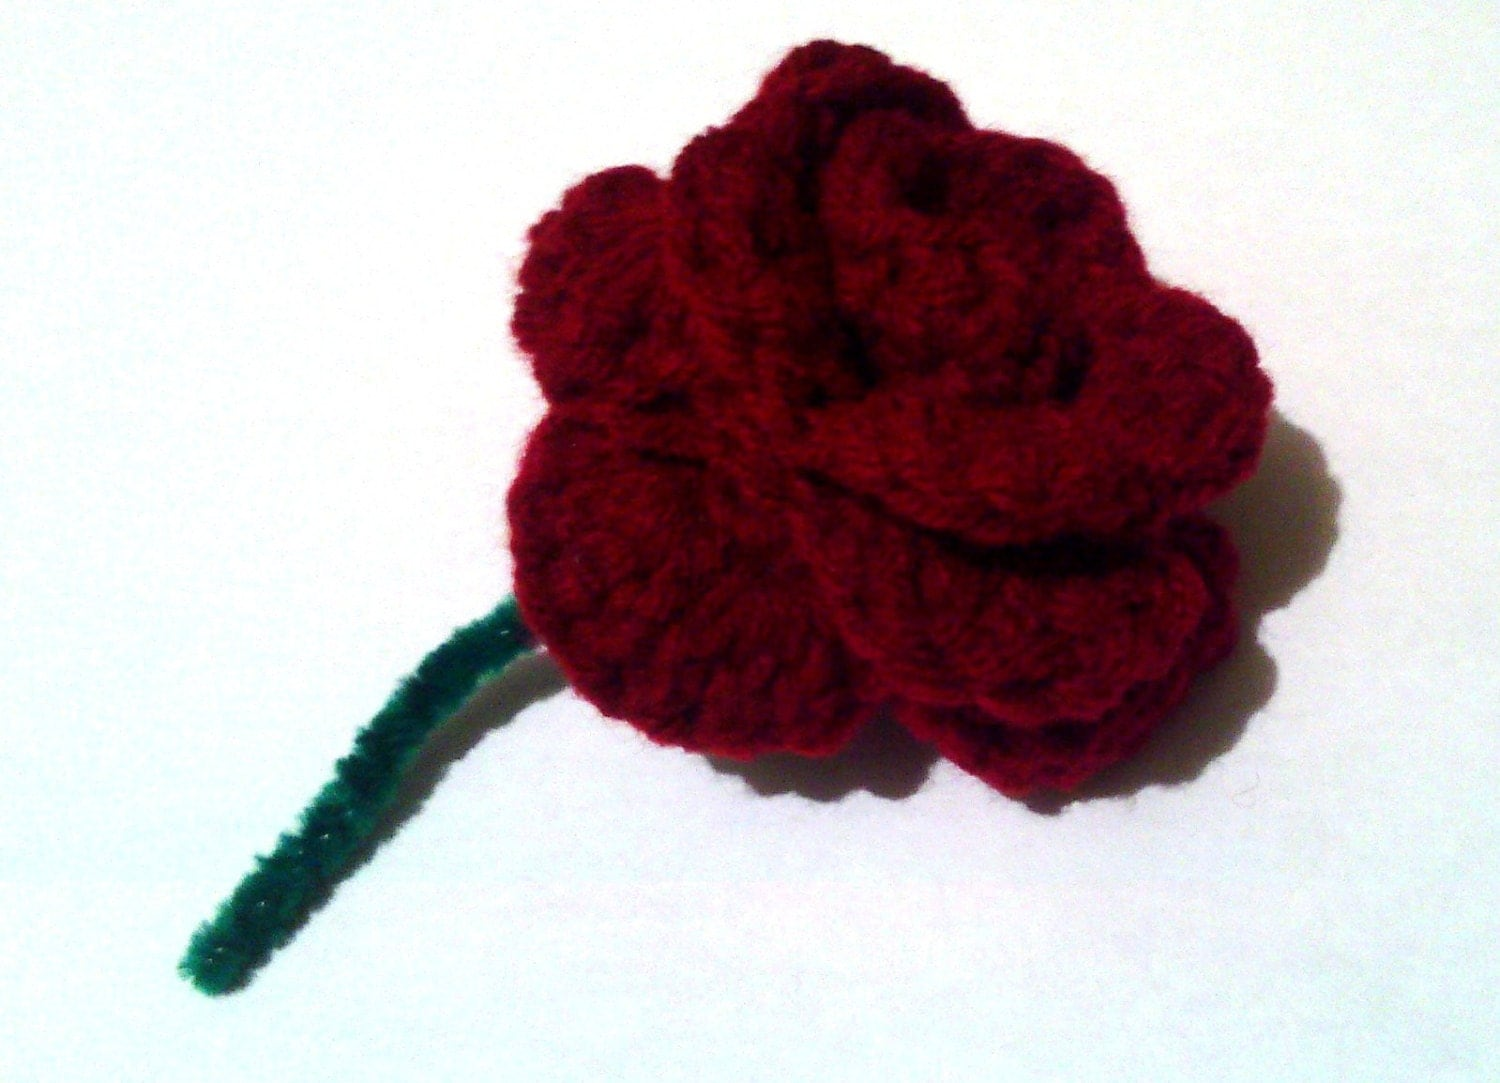 Crochet Rose Pattern No Sew : No Sewing Required Crochet Rose PATTERN